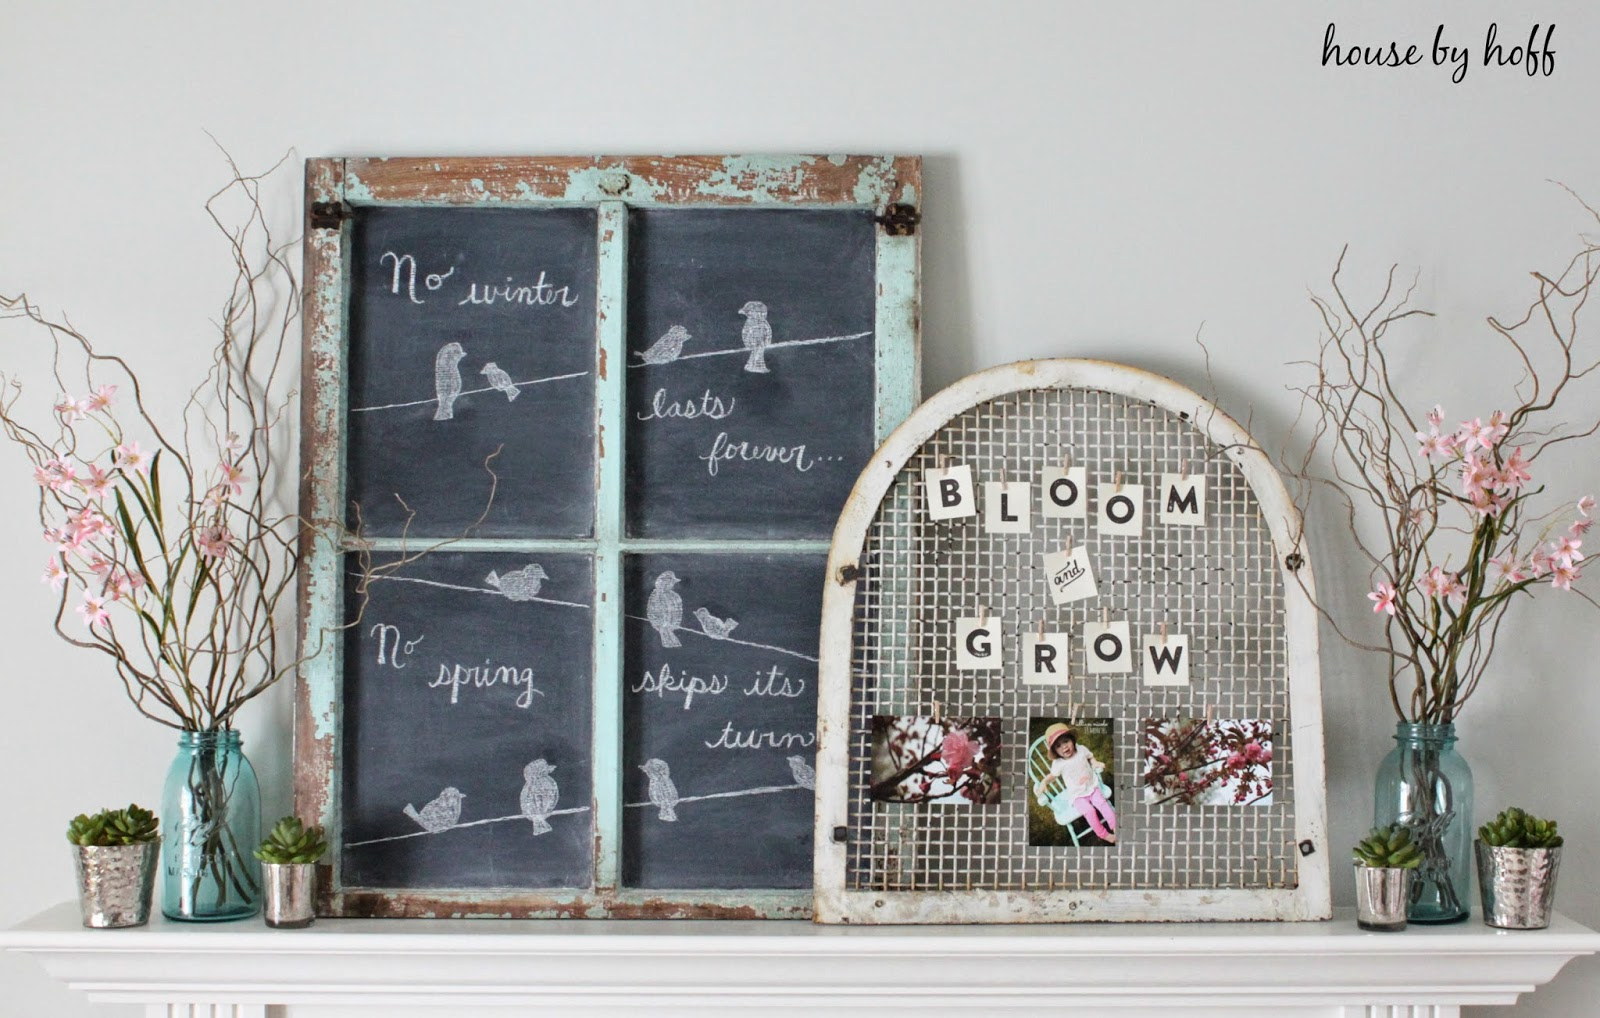 Adorable Shabby Farmhouse Spring Vignette with chippy chalkboard